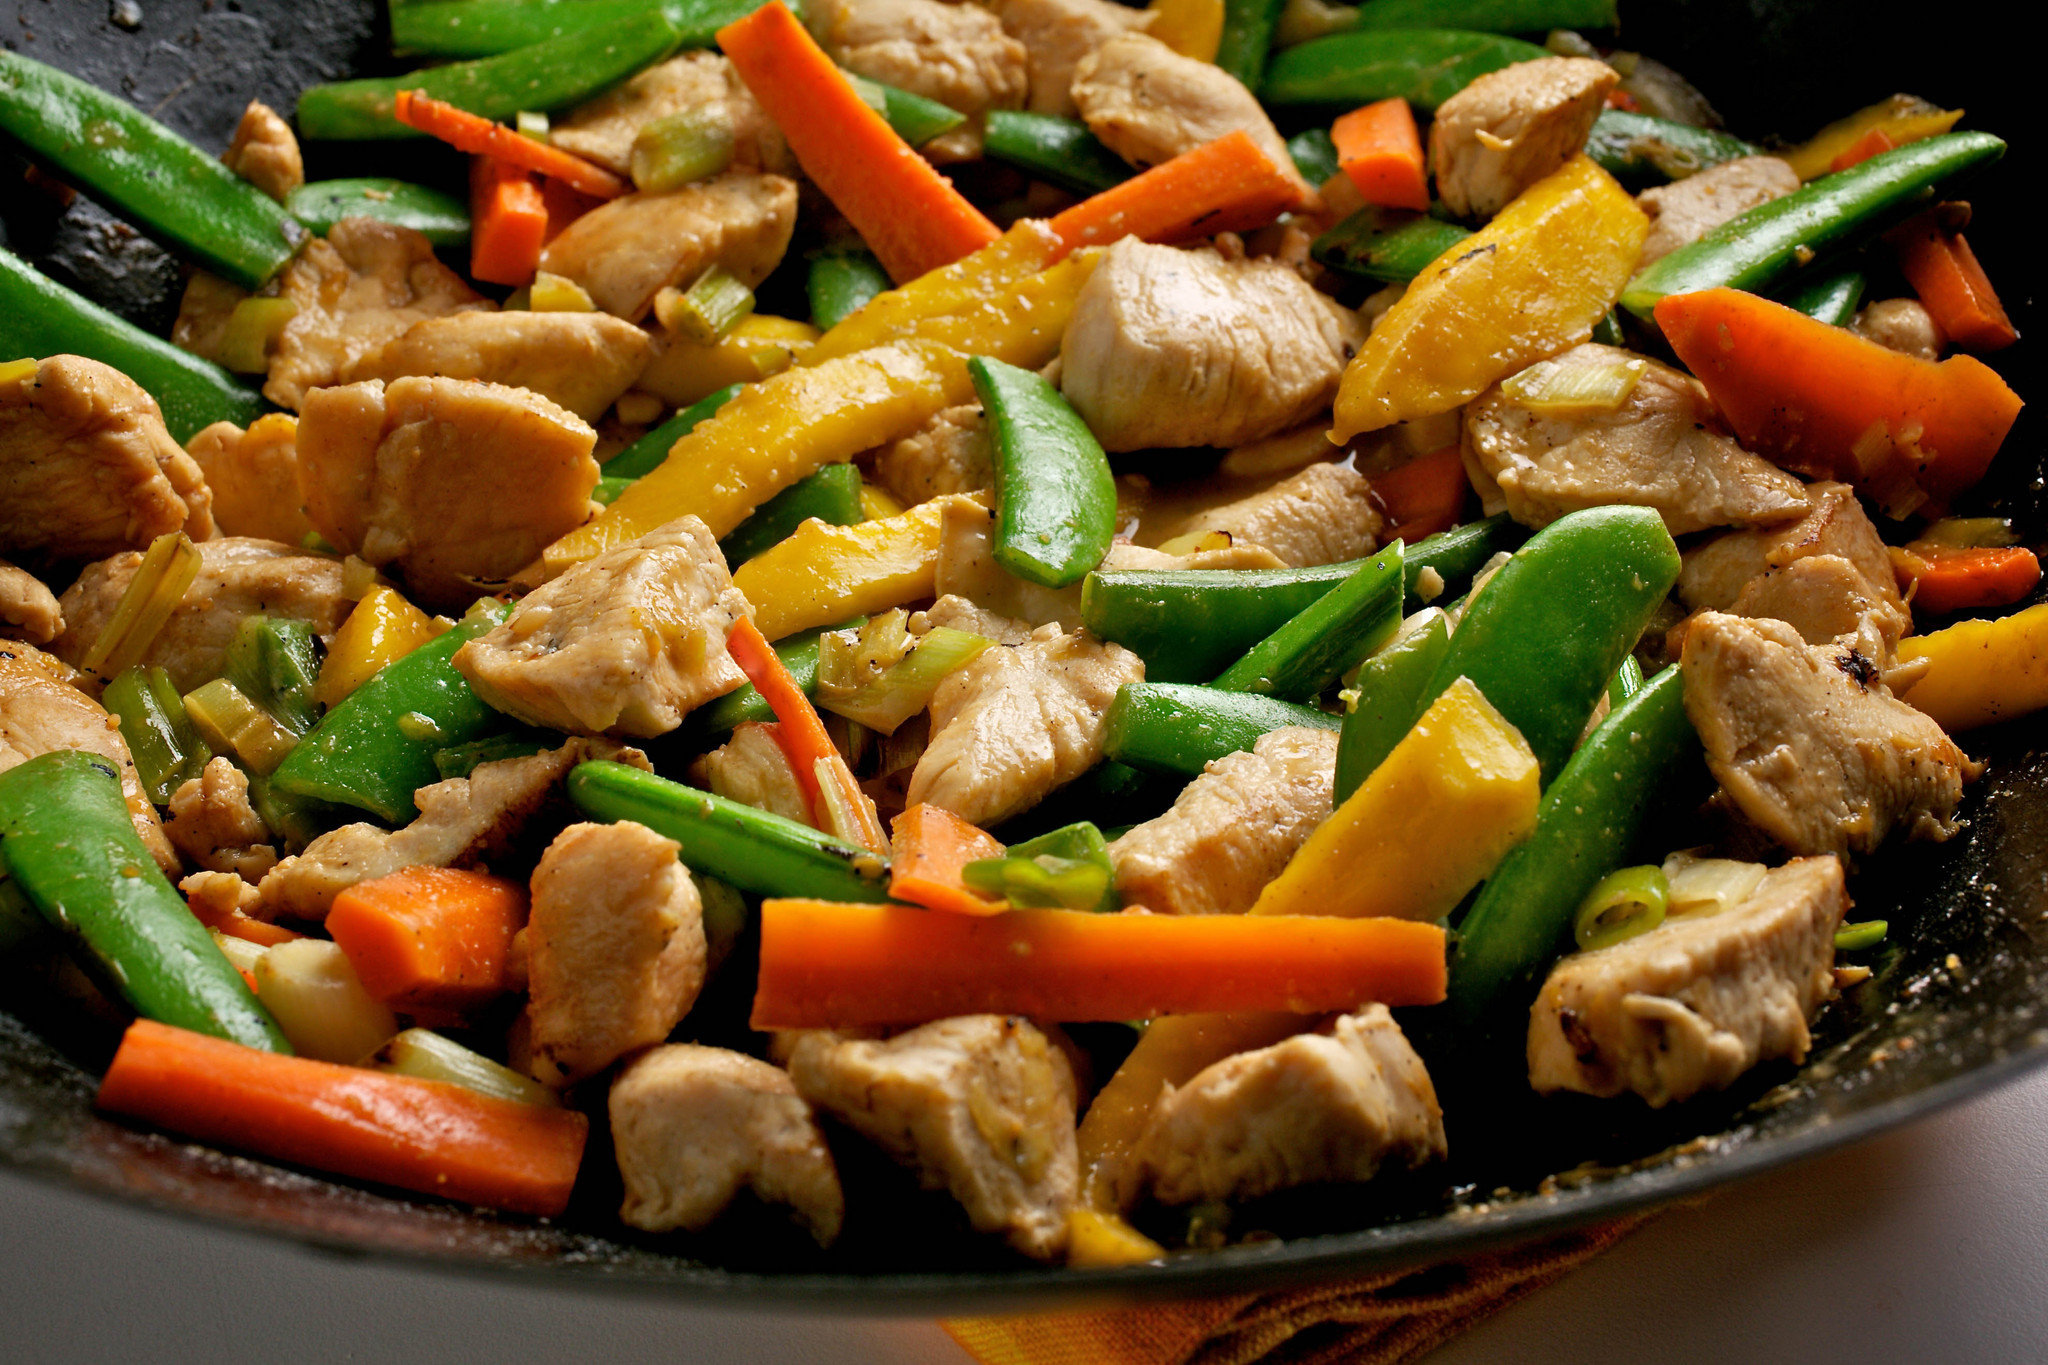 Chicken-Stir-Fry-by-Delicious-Creations-Glatt-Kosher-Catering-Caterer-for-Sarasota-Bradenton-St.-Petersburg-Clearwater-and-Tampa.-The-Best-Kosher-Restaurant-in-Tampa-Bay-www.Delicious-Creations.com_.jpg